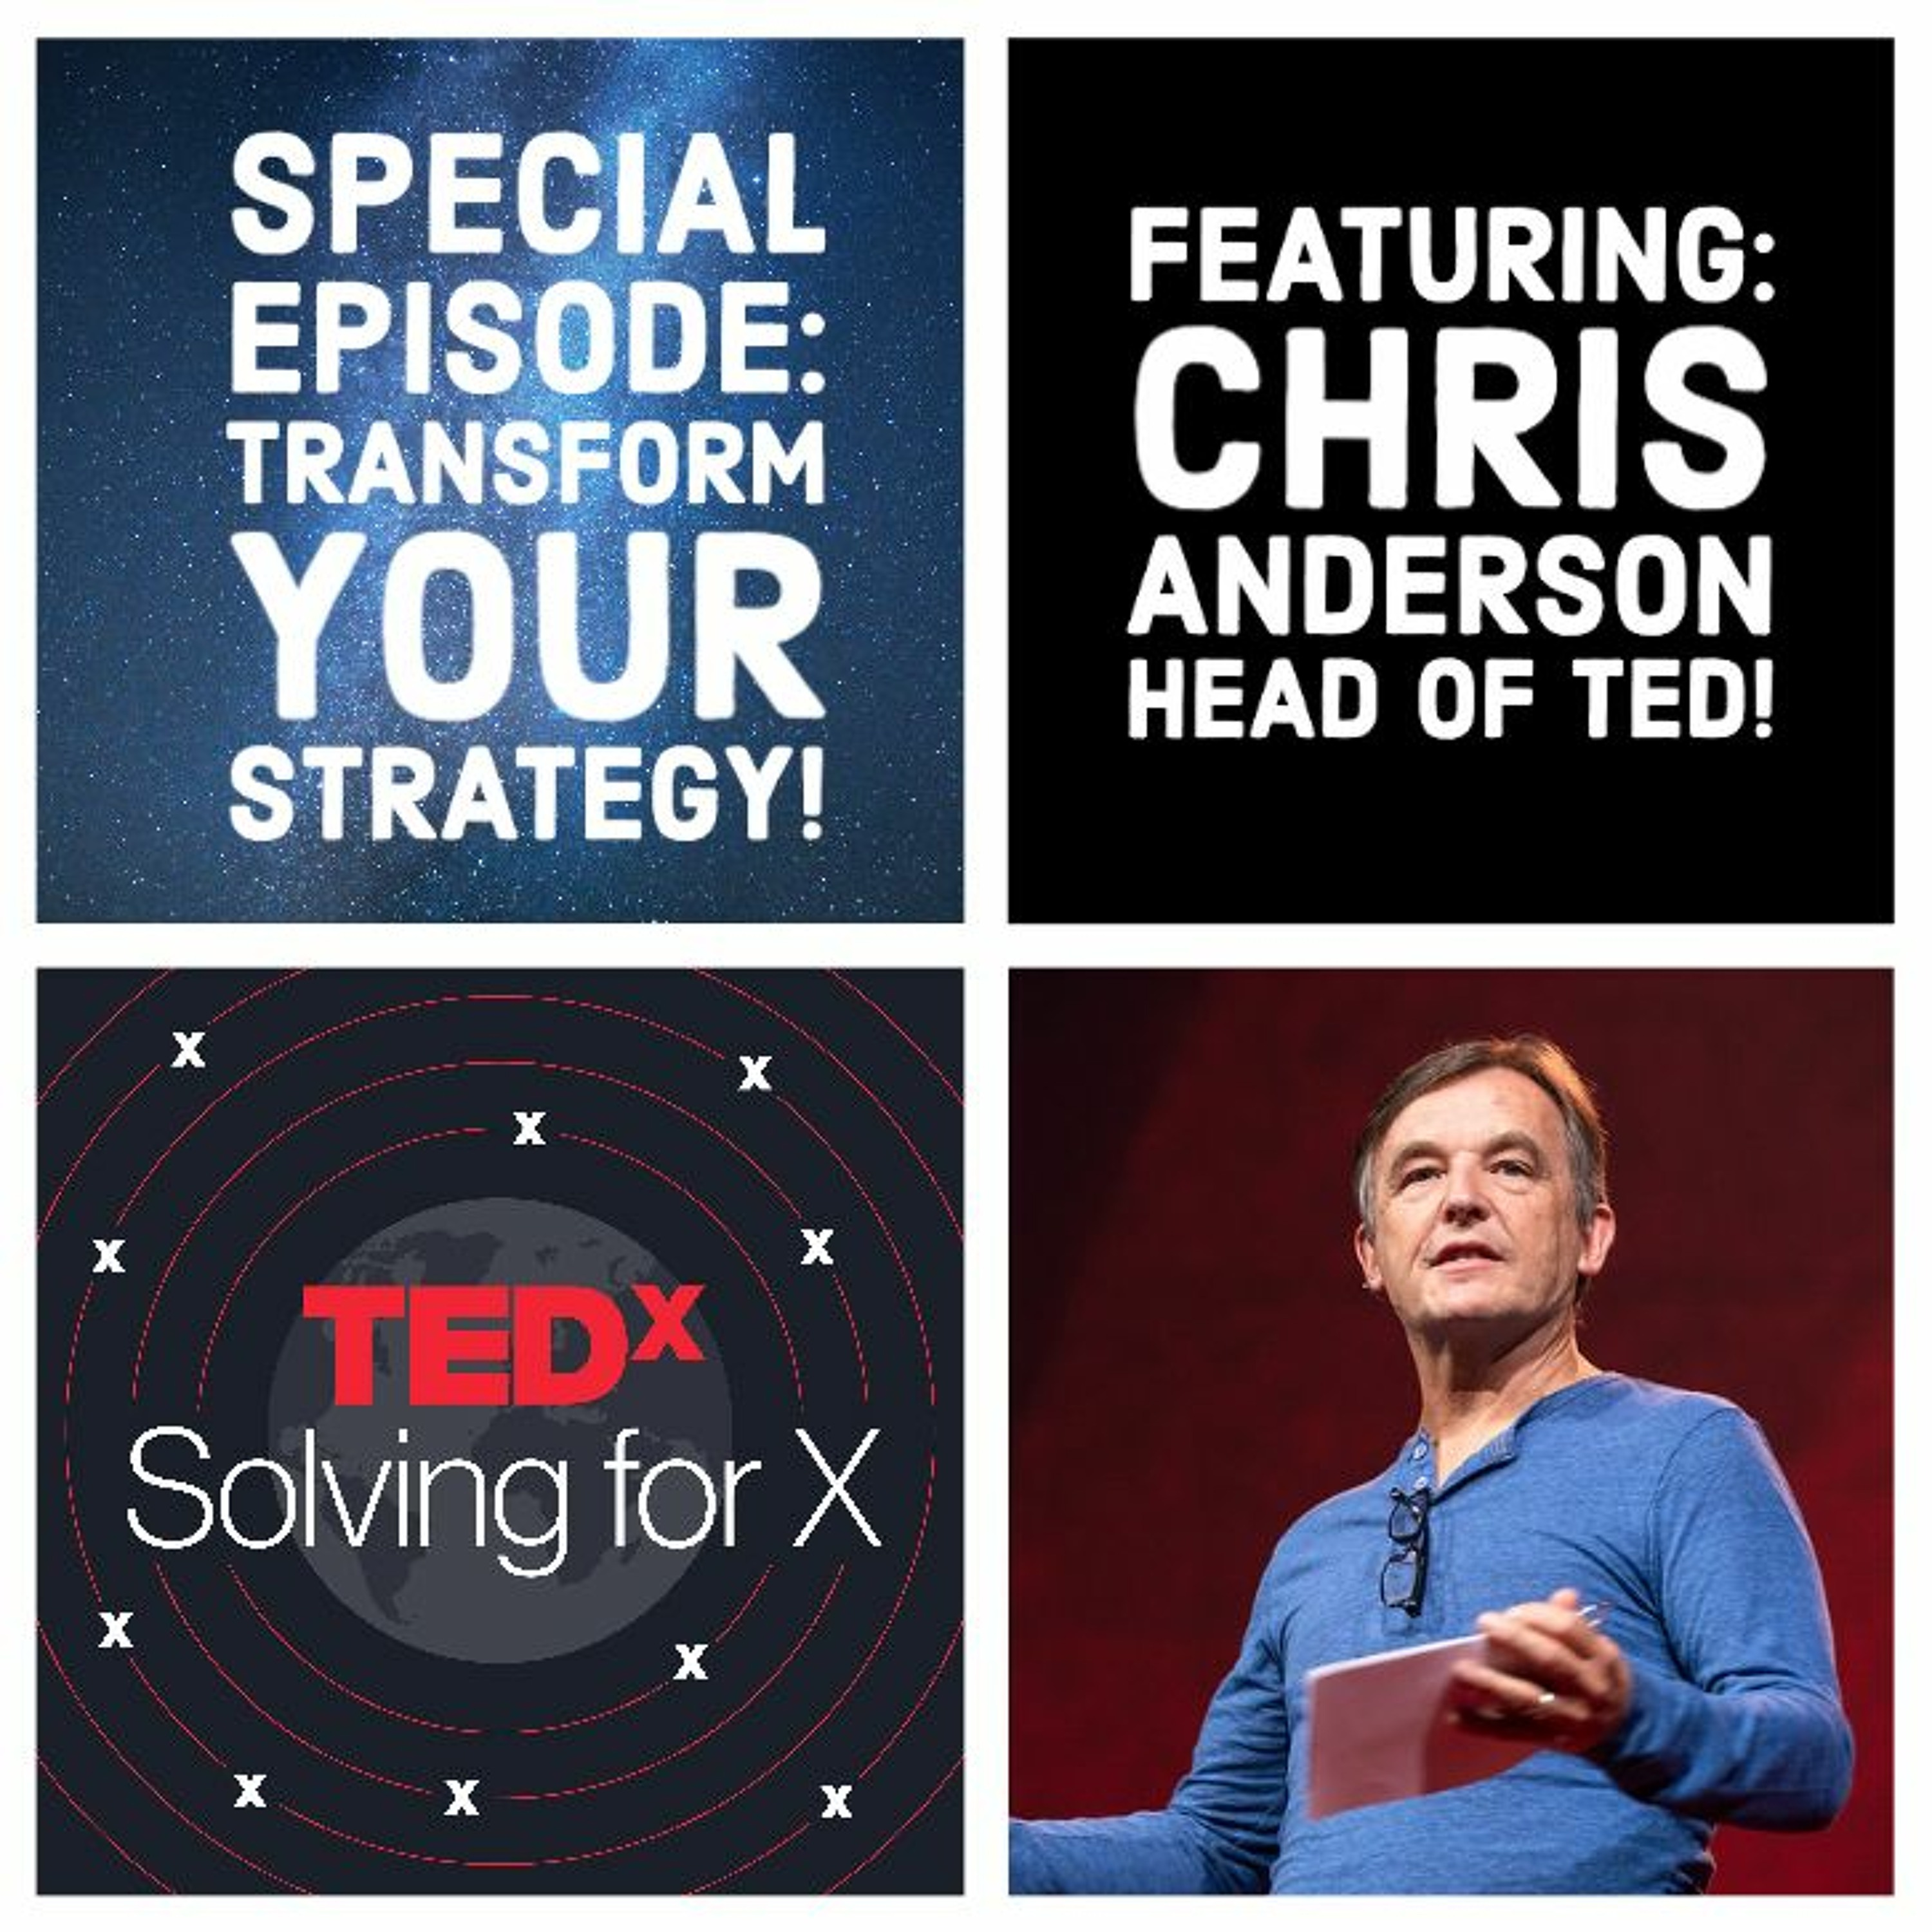 Transform your strategy — Chris Anderson, Head of TED